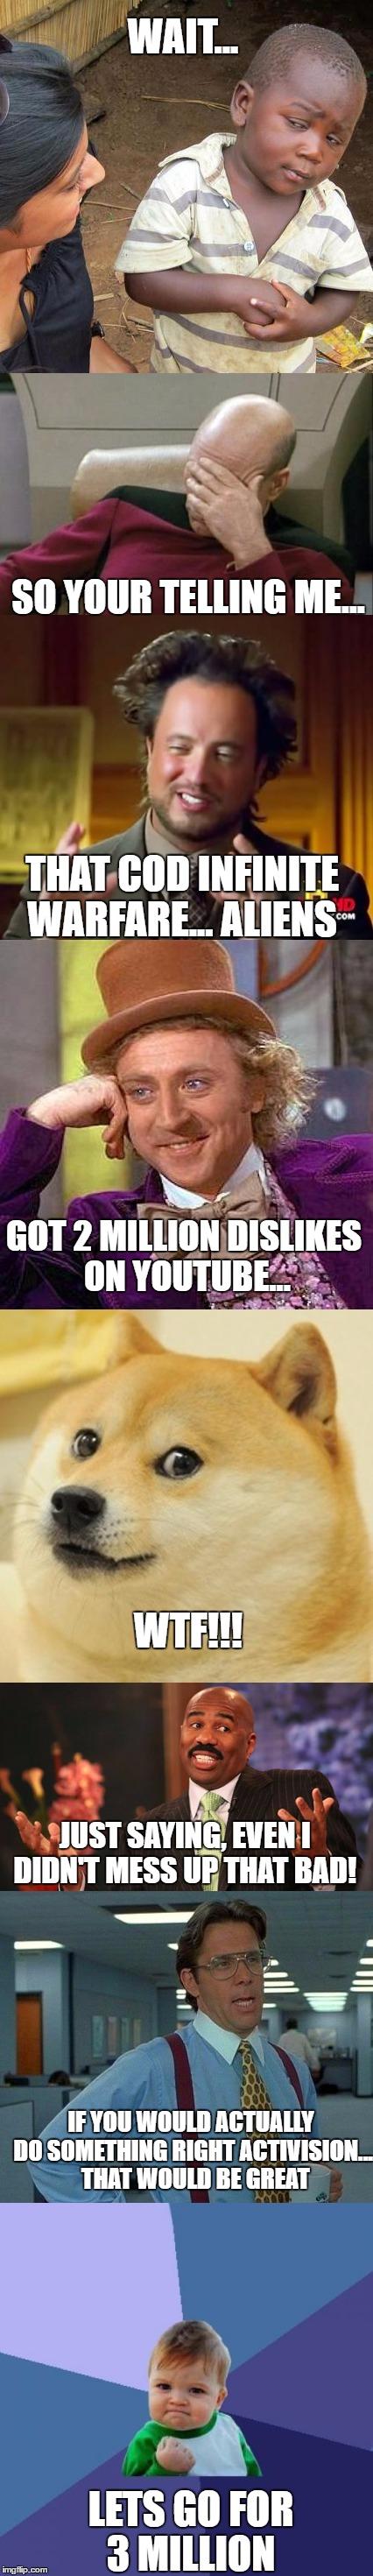 get your shit together activation, lets go for three million   | WAIT... LETS GO FOR 3 MILLION SO YOUR TELLING ME... THAT COD INFINITE WARFARE... ALIENS GOT 2 MILLION DISLIKES ON YOUTUBE... WTF!!! JUST SAY | image tagged in memes,so true memes,activision | made w/ Imgflip meme maker